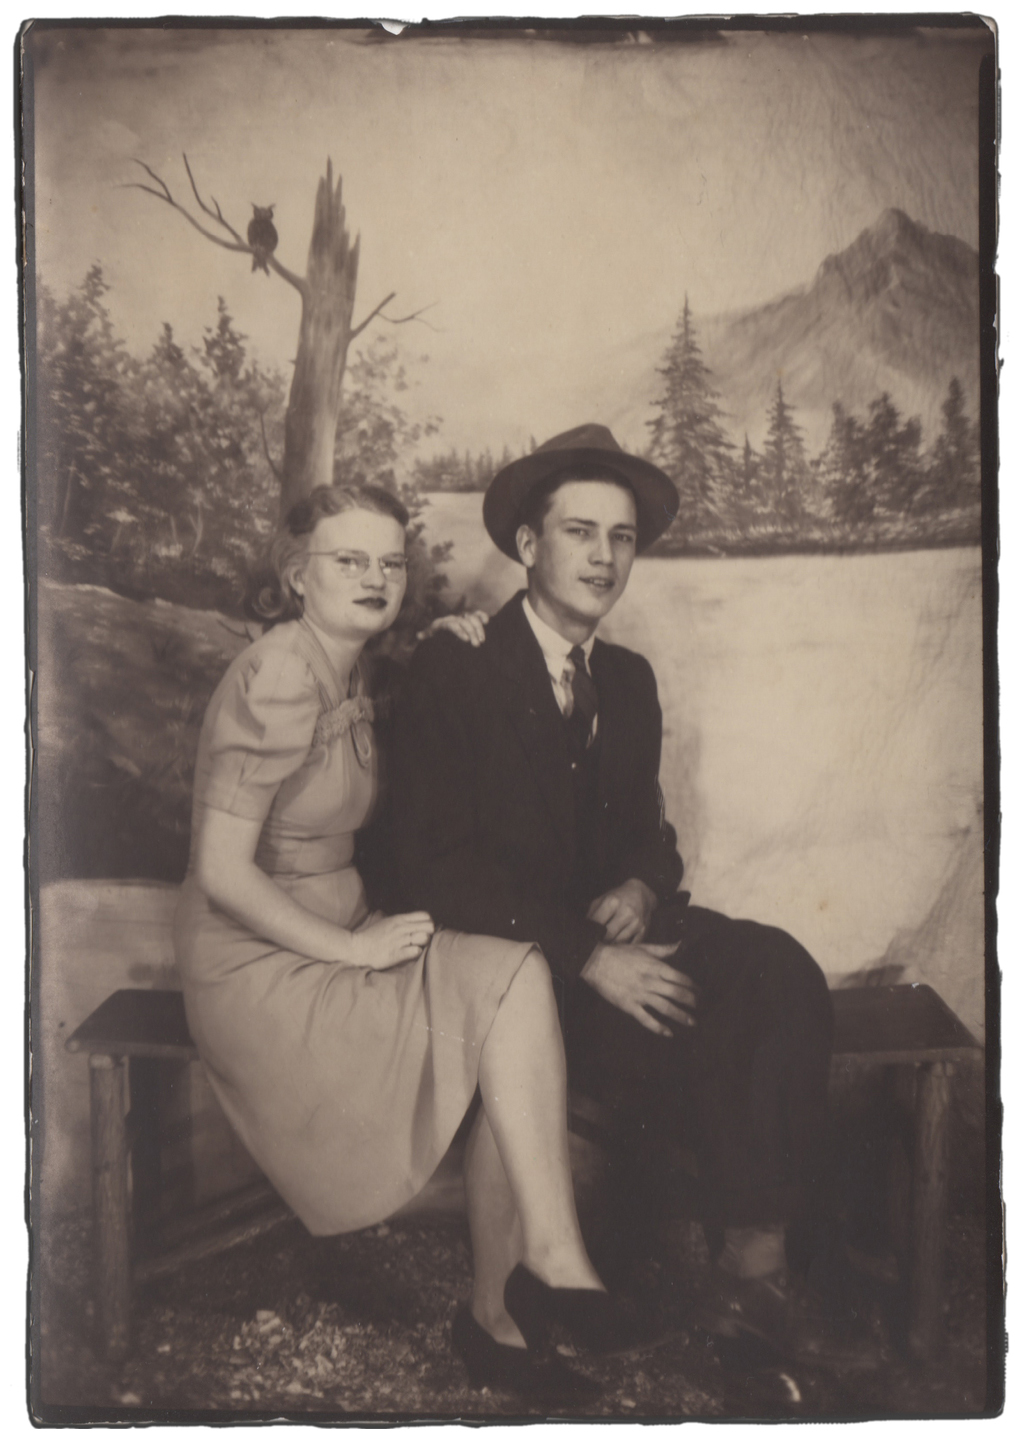 CLARENCE AND FLORA REECE, 1940